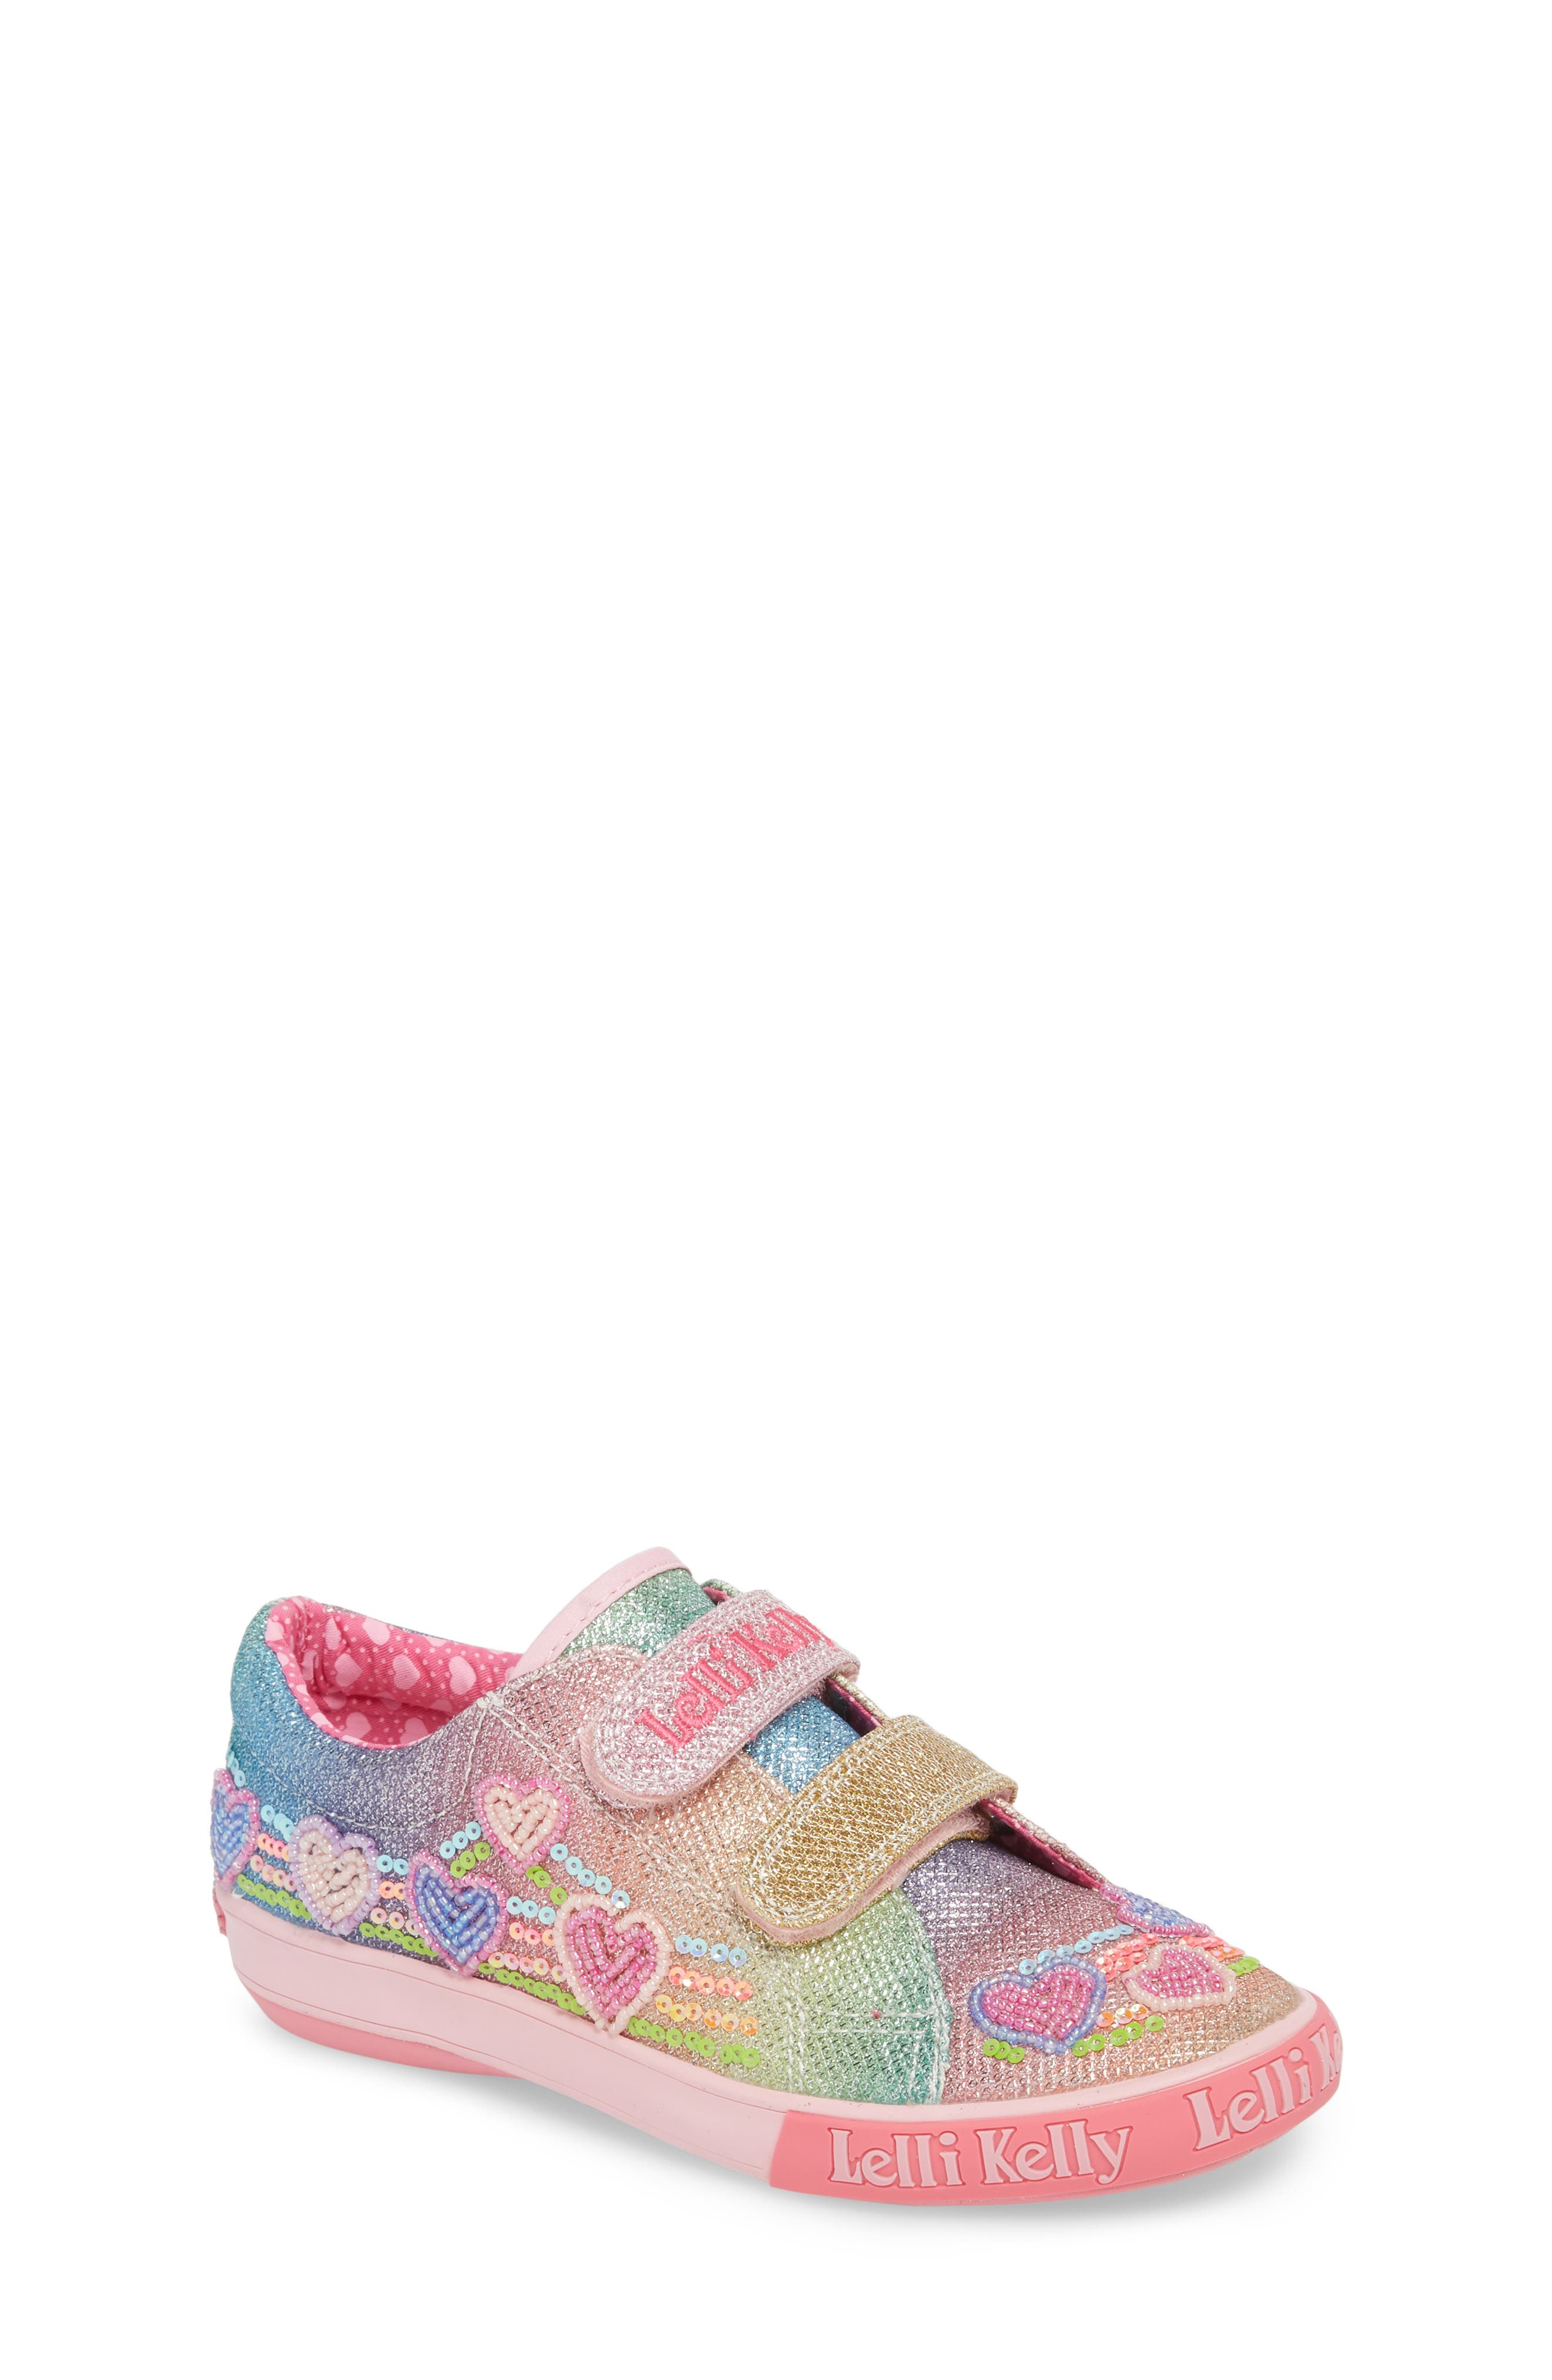 Lelli Kelly Beaded Sneaker (Toddler, Little Kid & Big Kid)